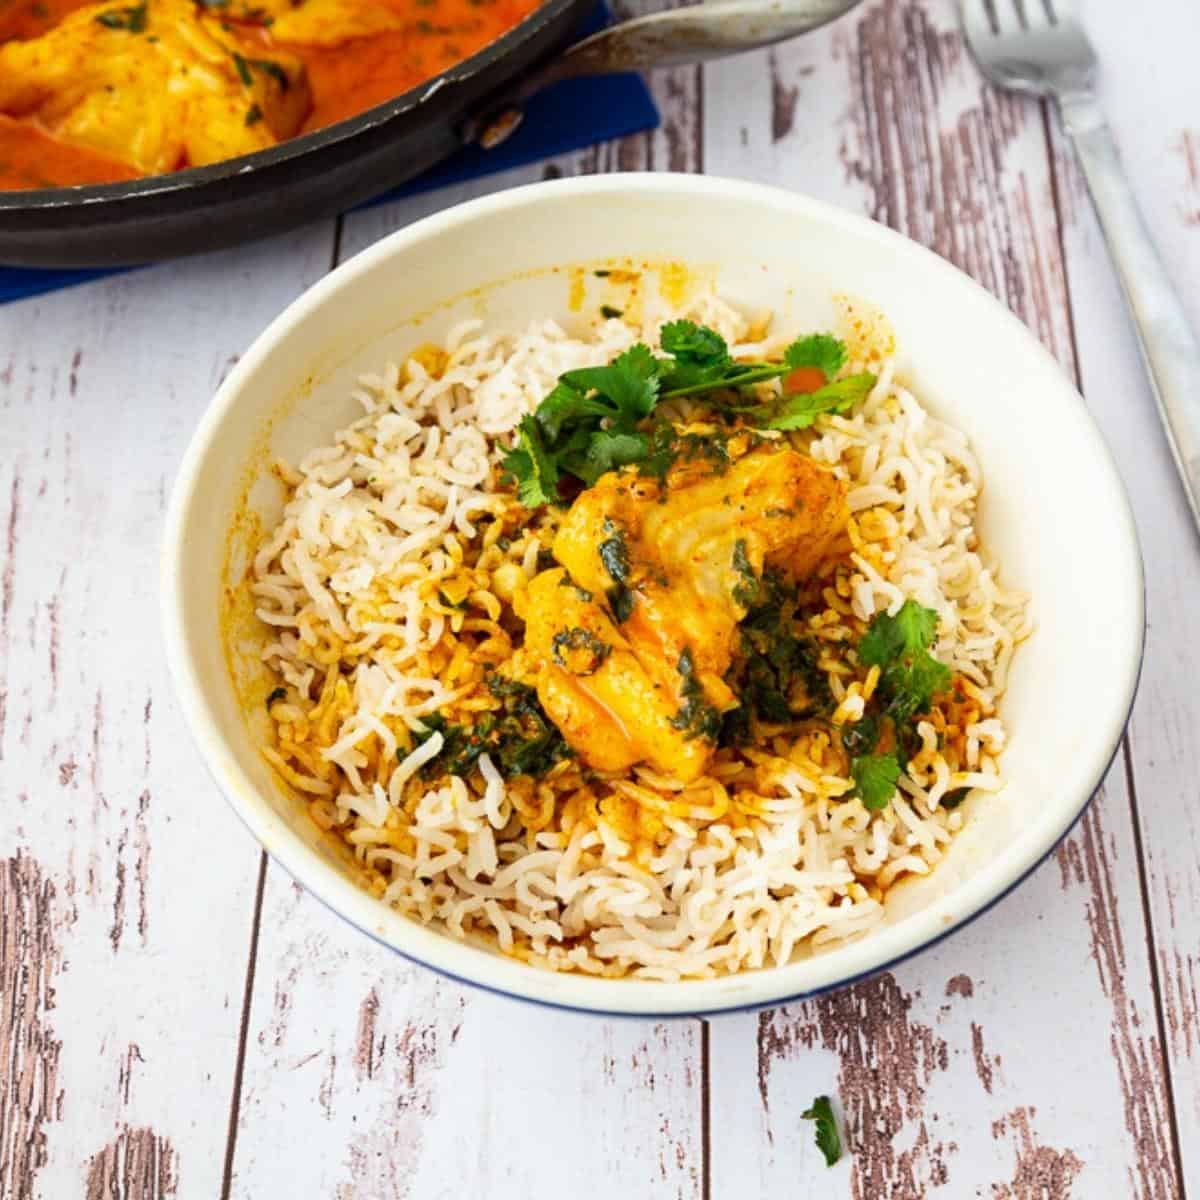 A bowl of rice topped with fish and curry.